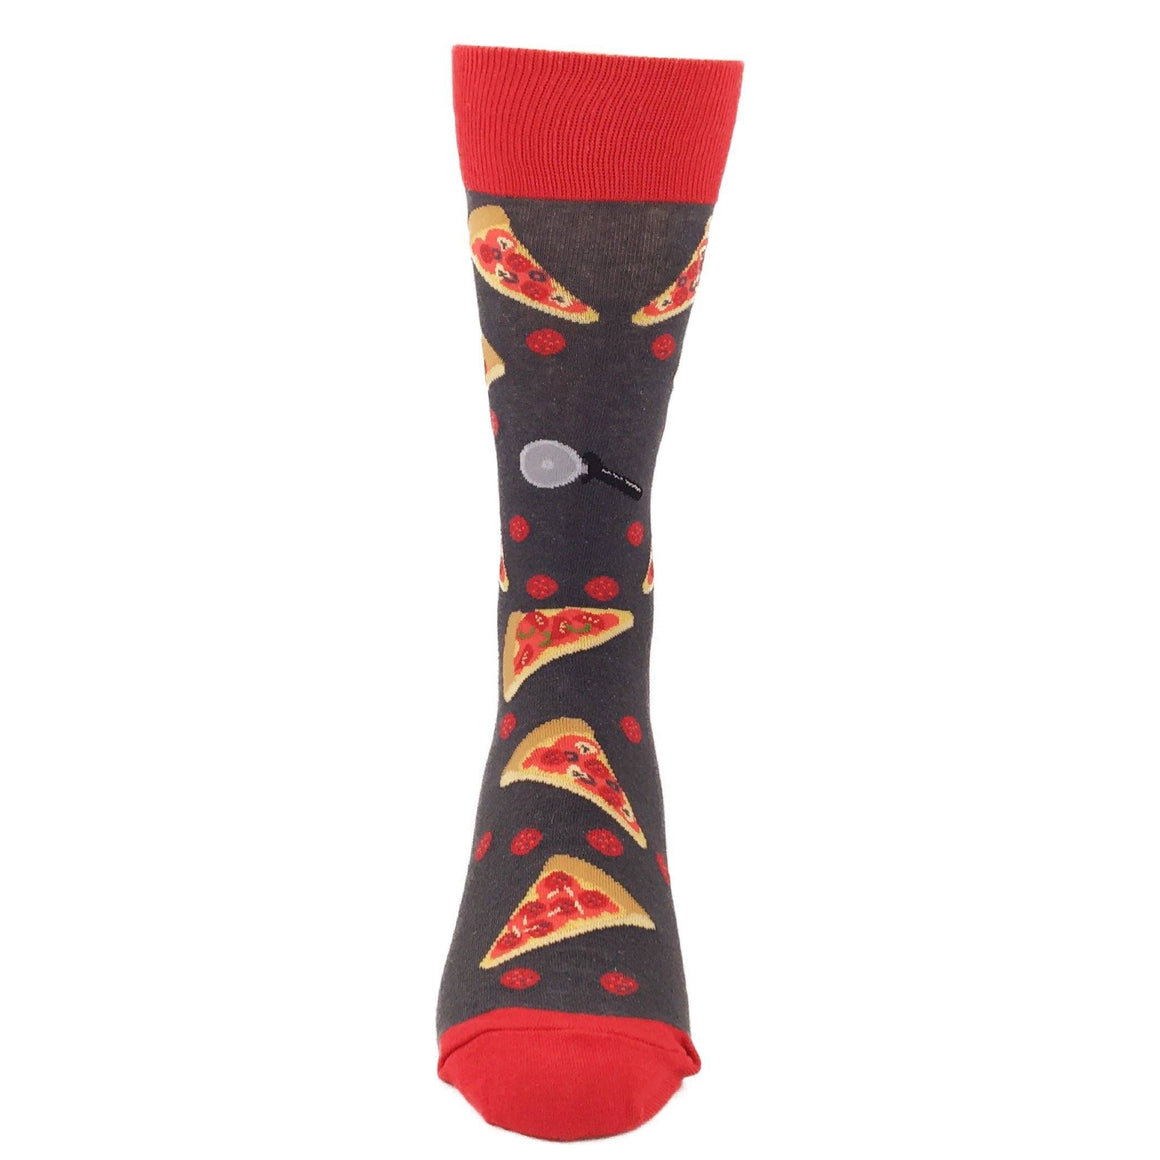 A Slice of Pizza Socks by Foot Traffic - The Sock Spot